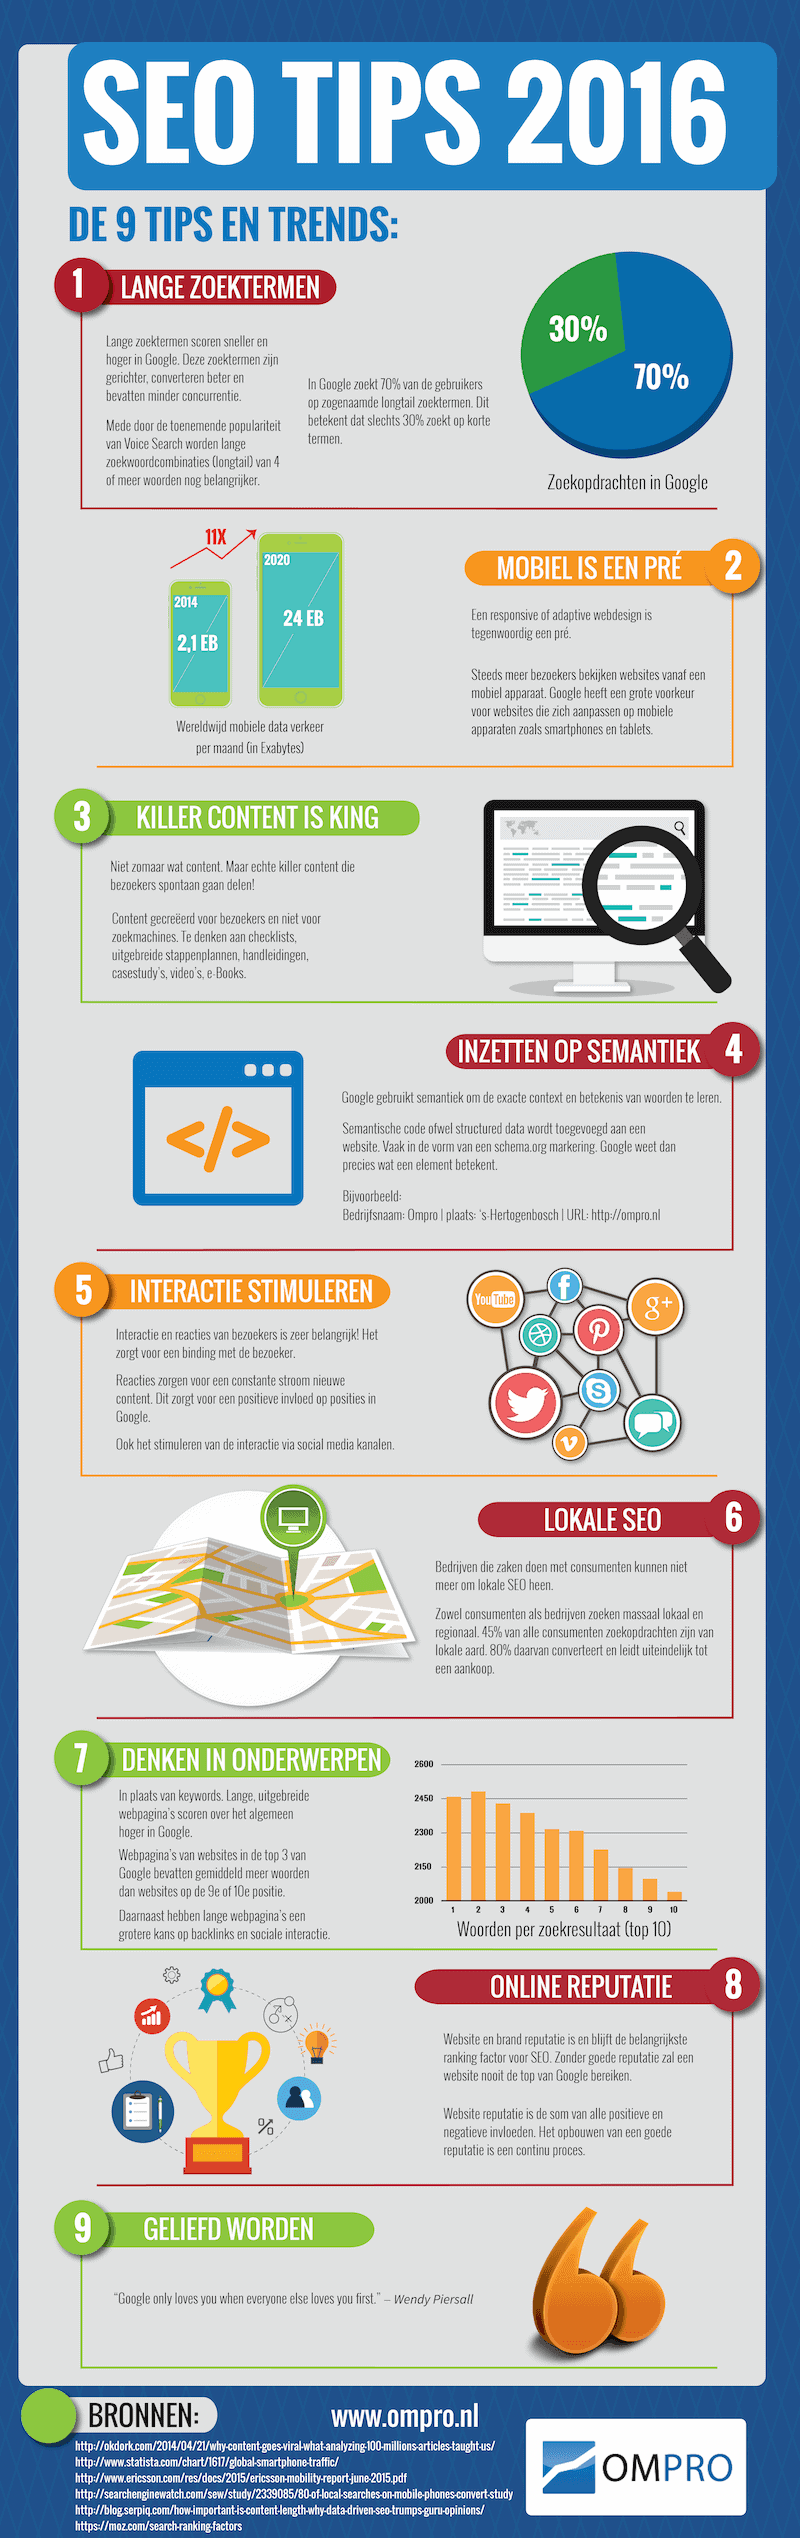 SEO tips 2016 infographic